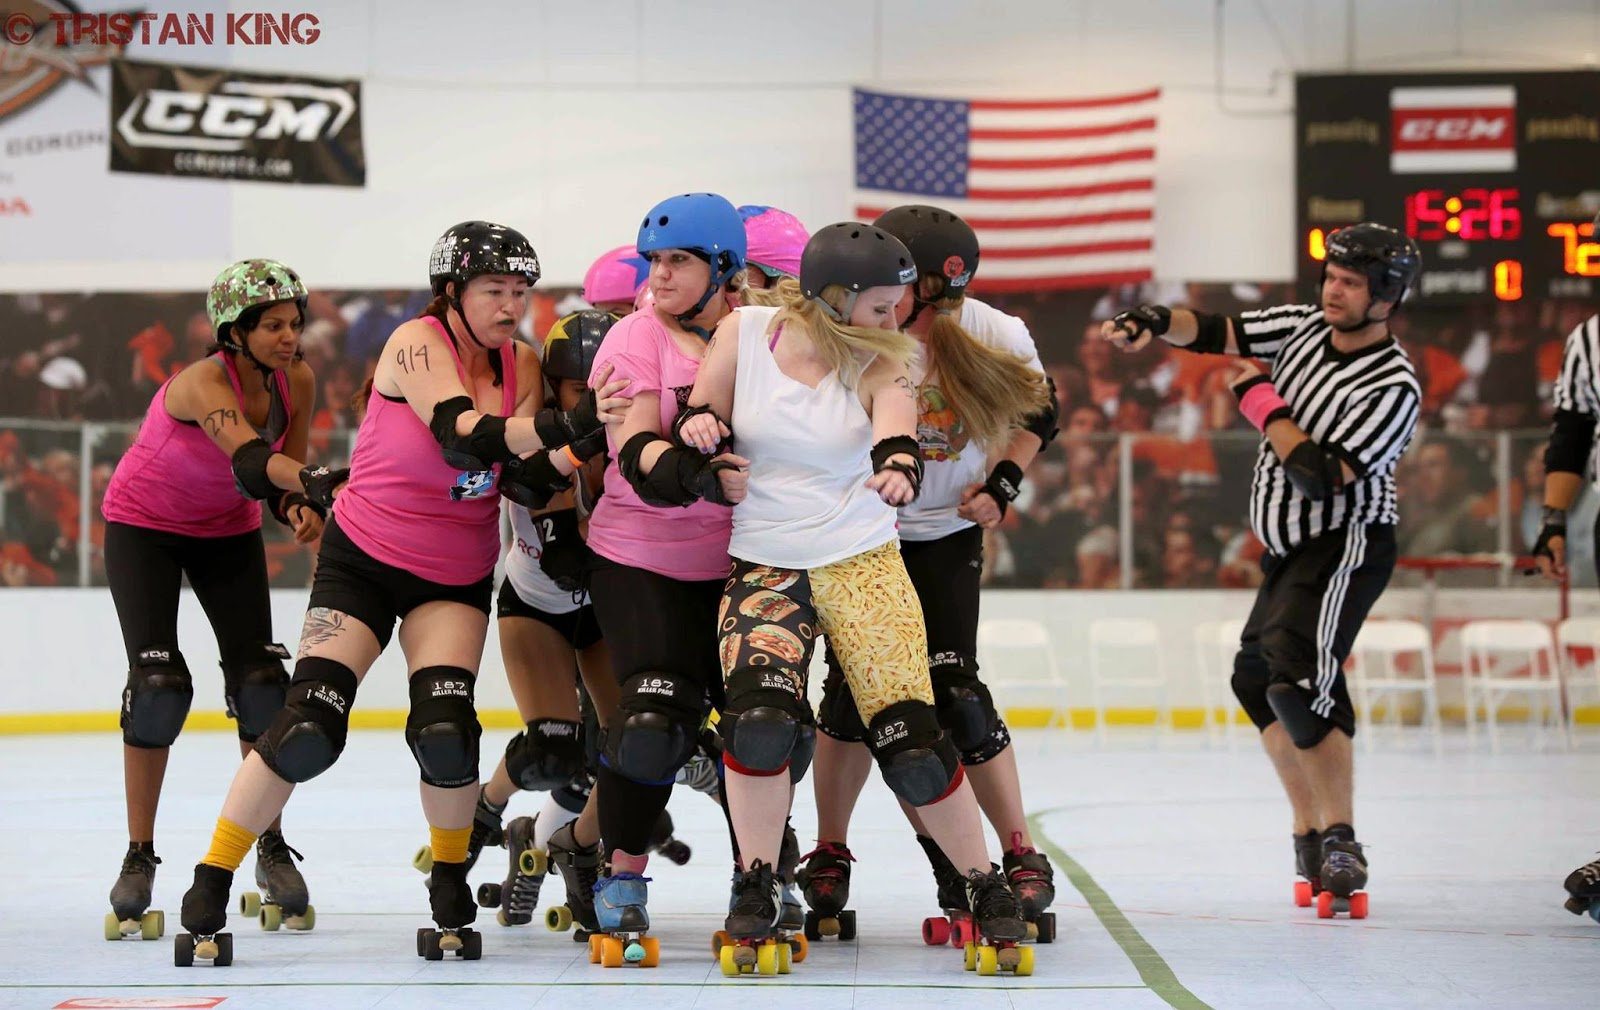 Roller skating visalia -  Girls You Normally Skate Against And Having Them Be On Your Team Center And Up Front Is Black And Blue Cheese I Hear She S Up For Grabs